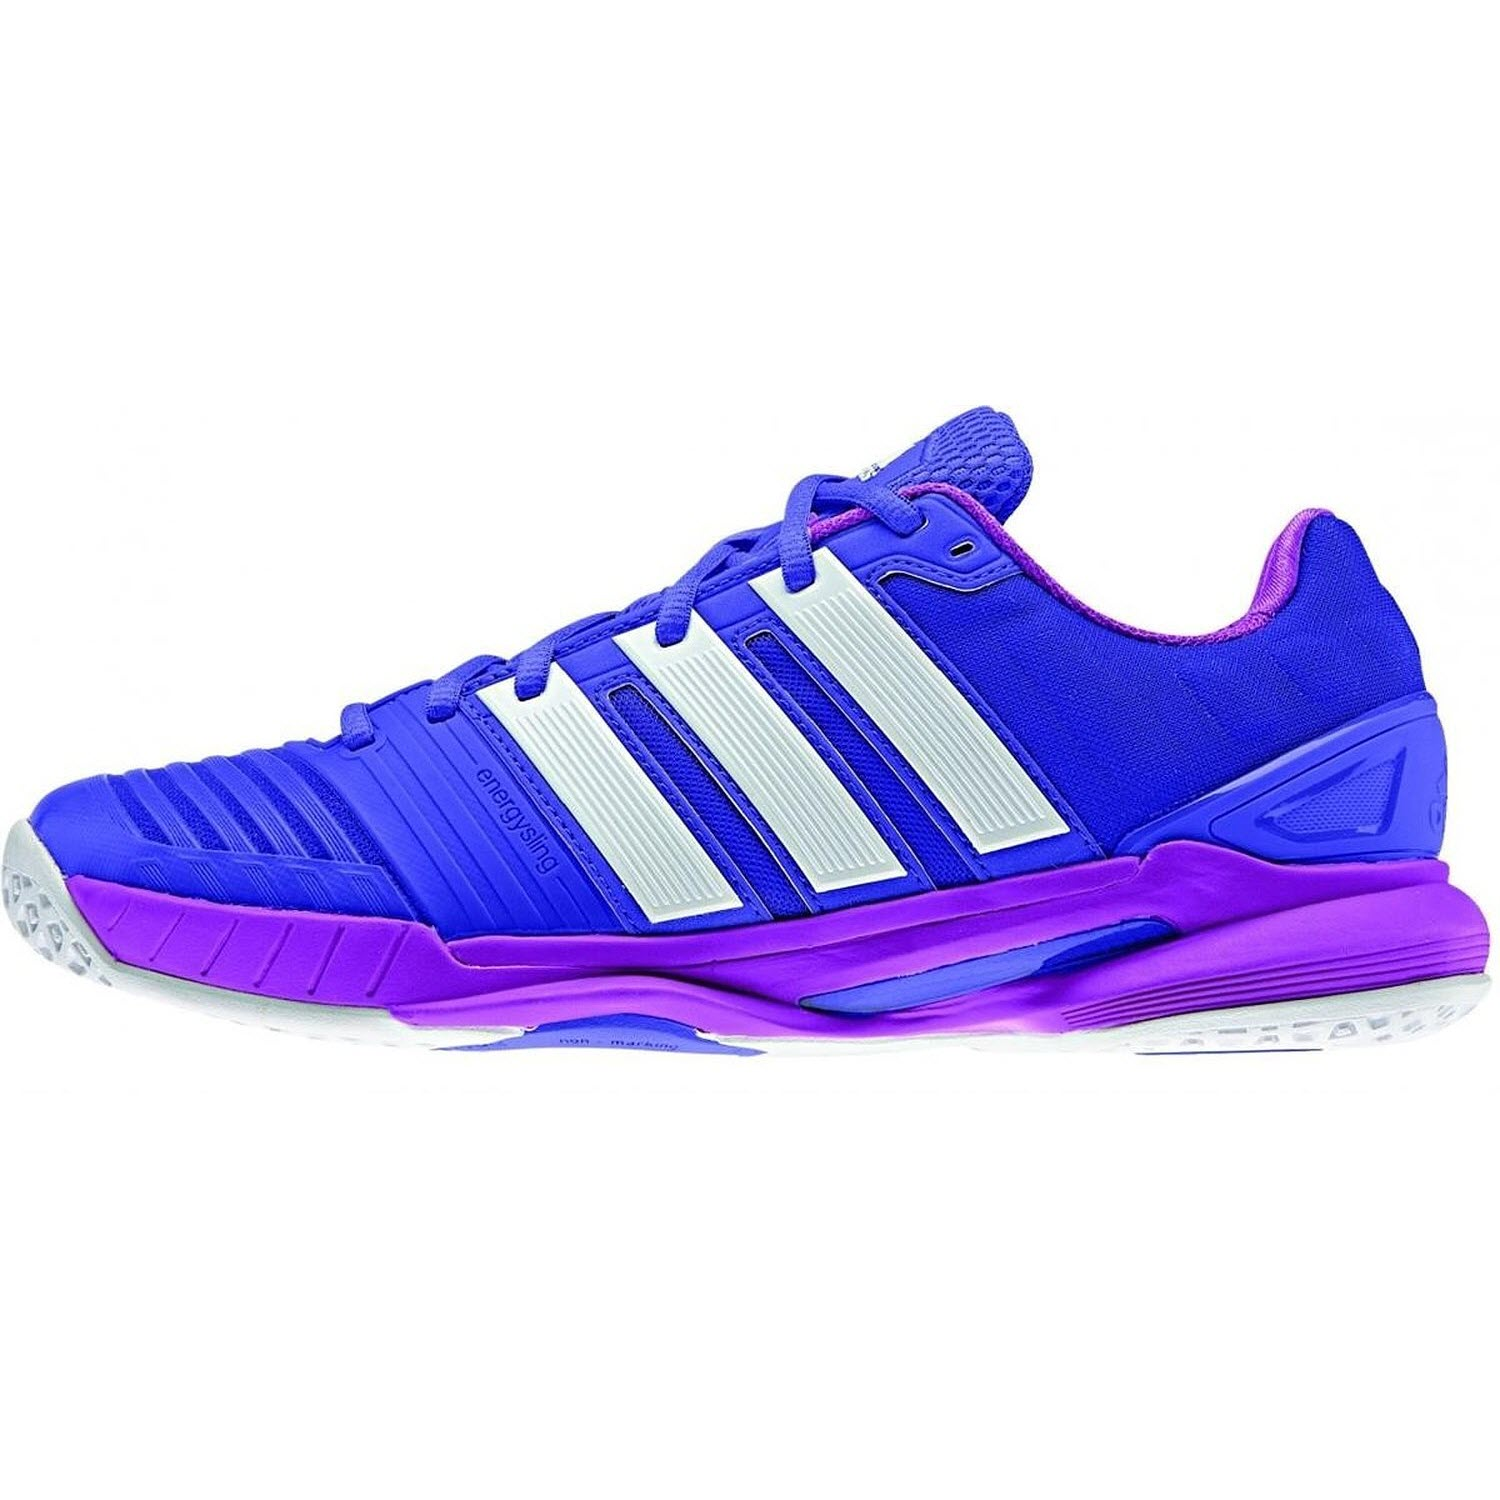 Adida Adipower Stabil 11 Women